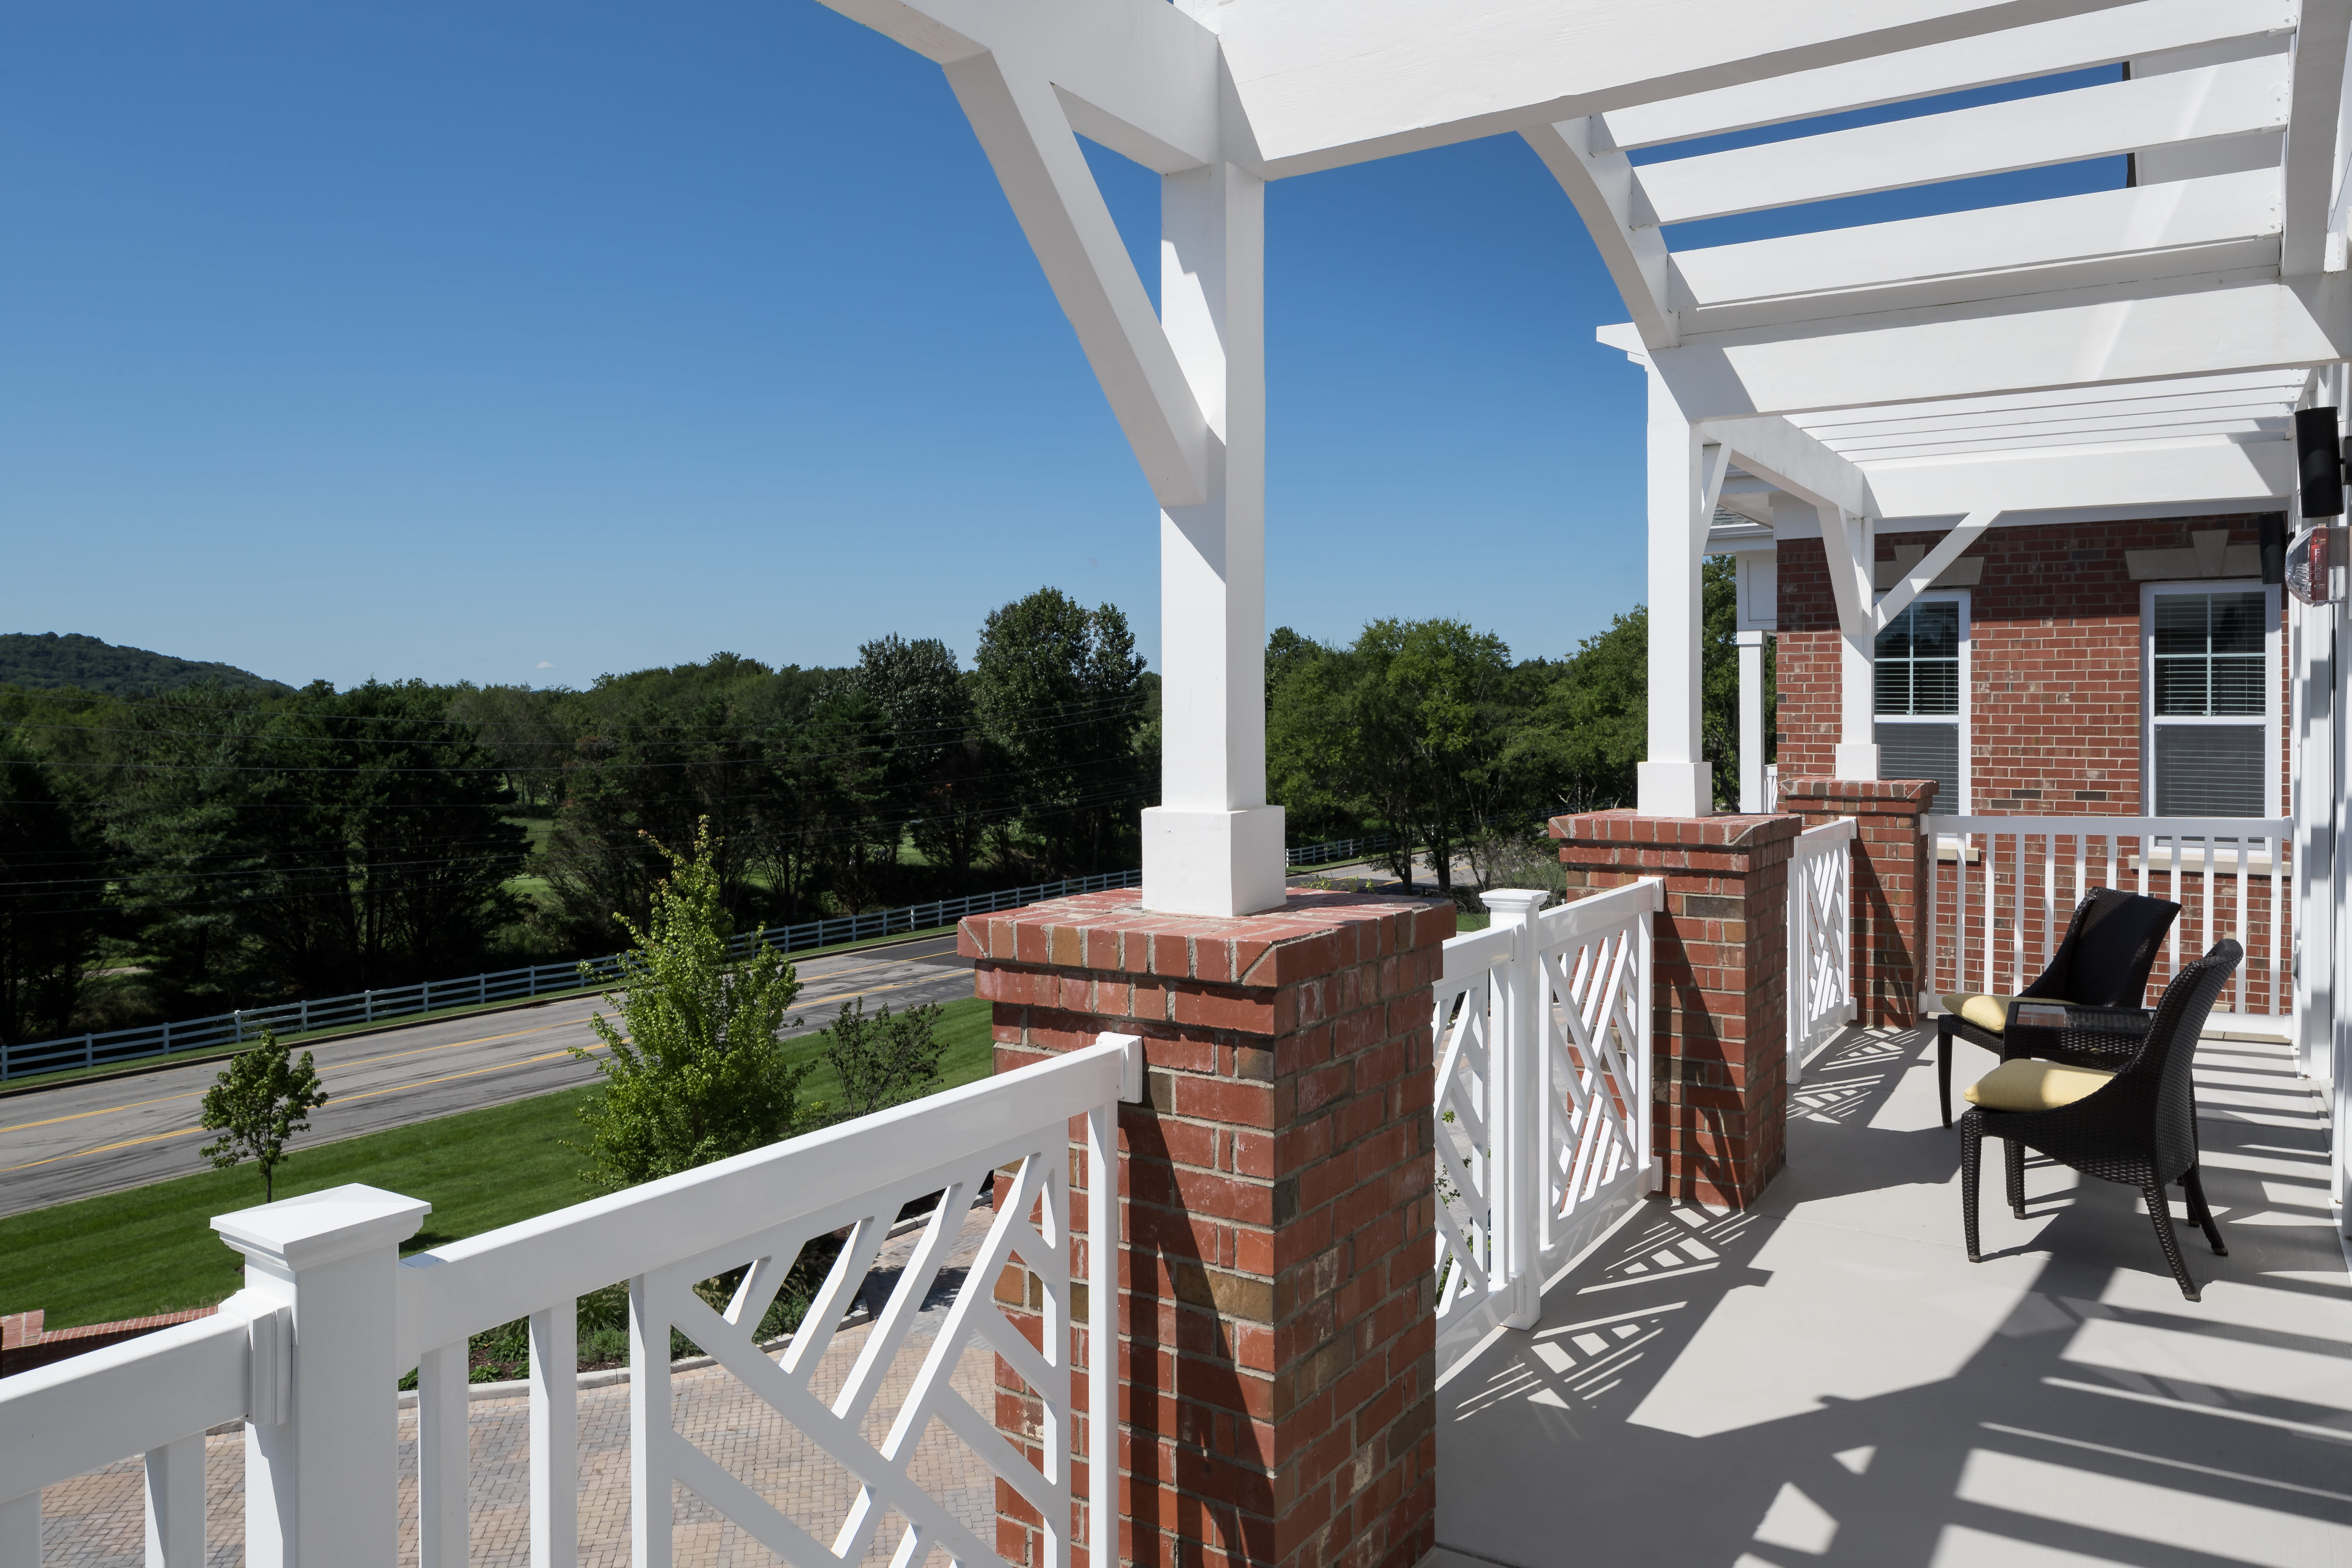 Gorgeous view from balcony at Avenida Cool Springs Active Senior Living in Franklin, TN